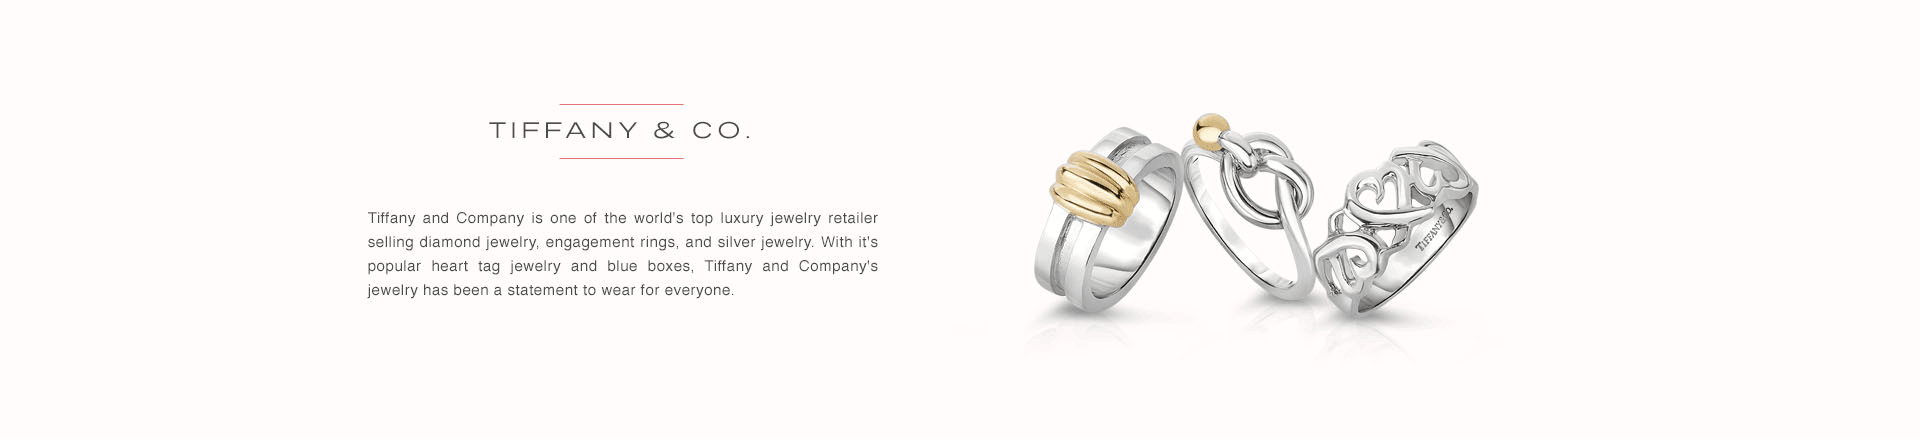 Jewelry Company PNG - 113505